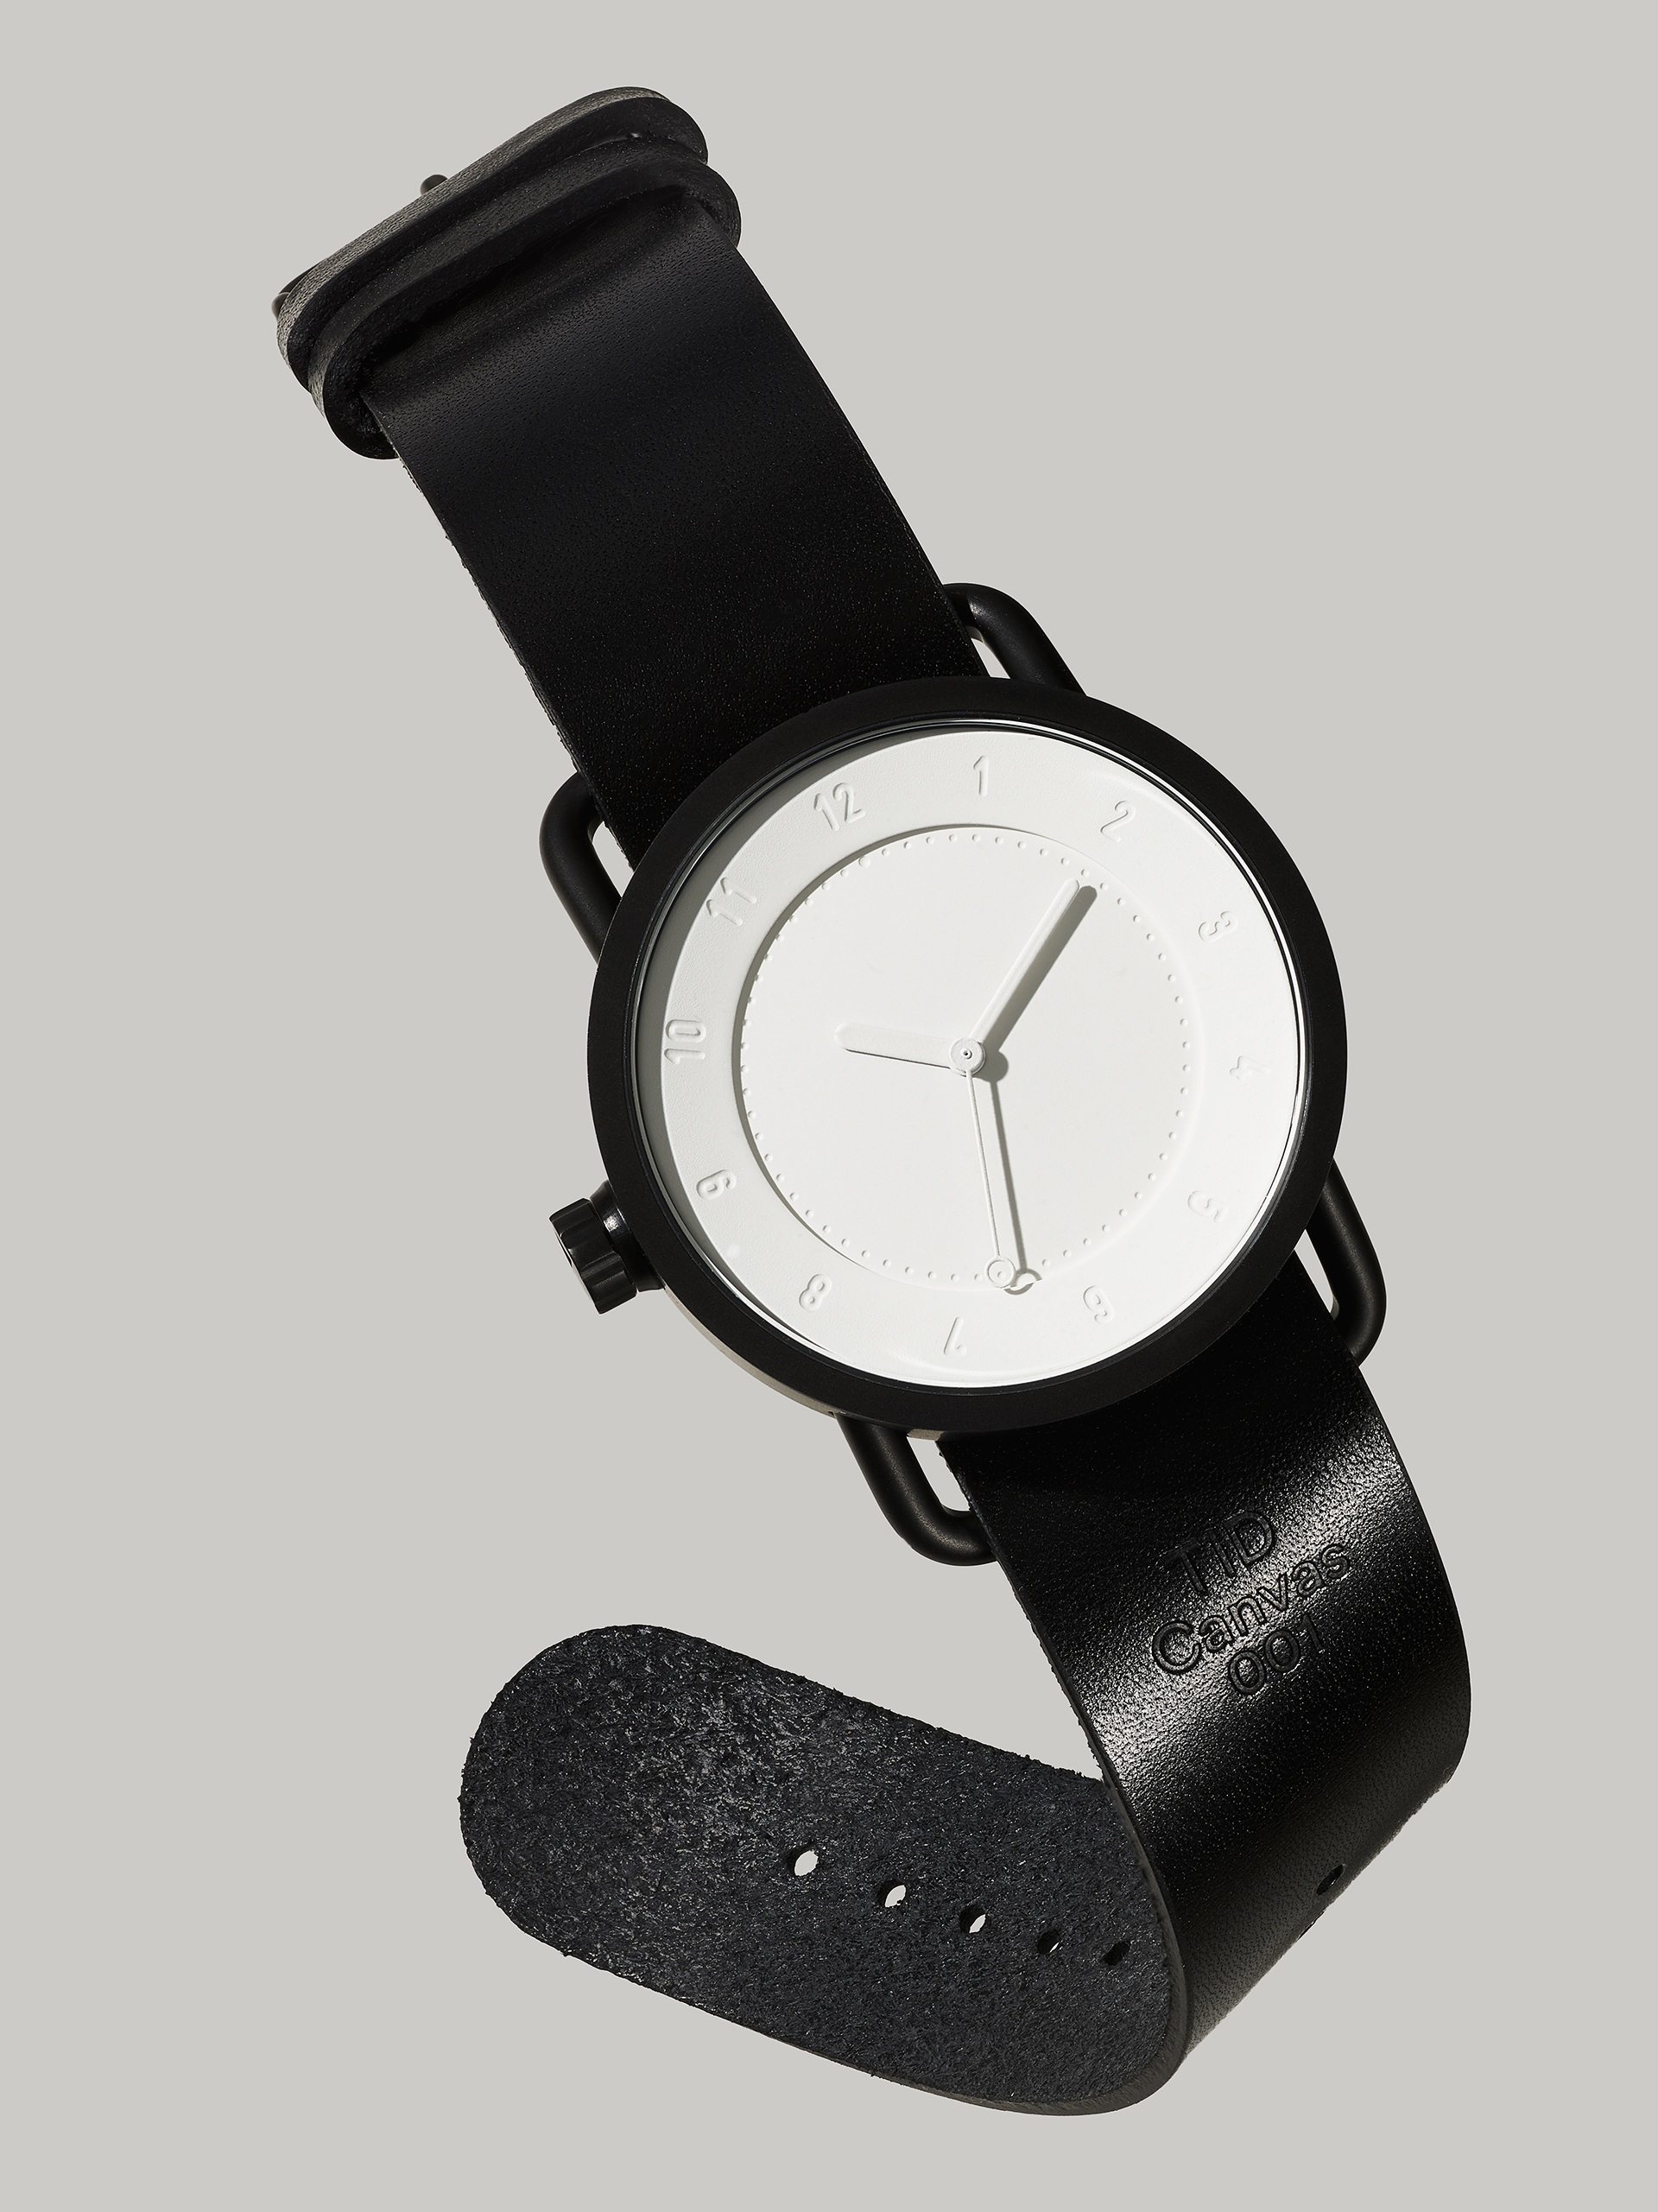 sam canvas watch undone watches by new concept brand and